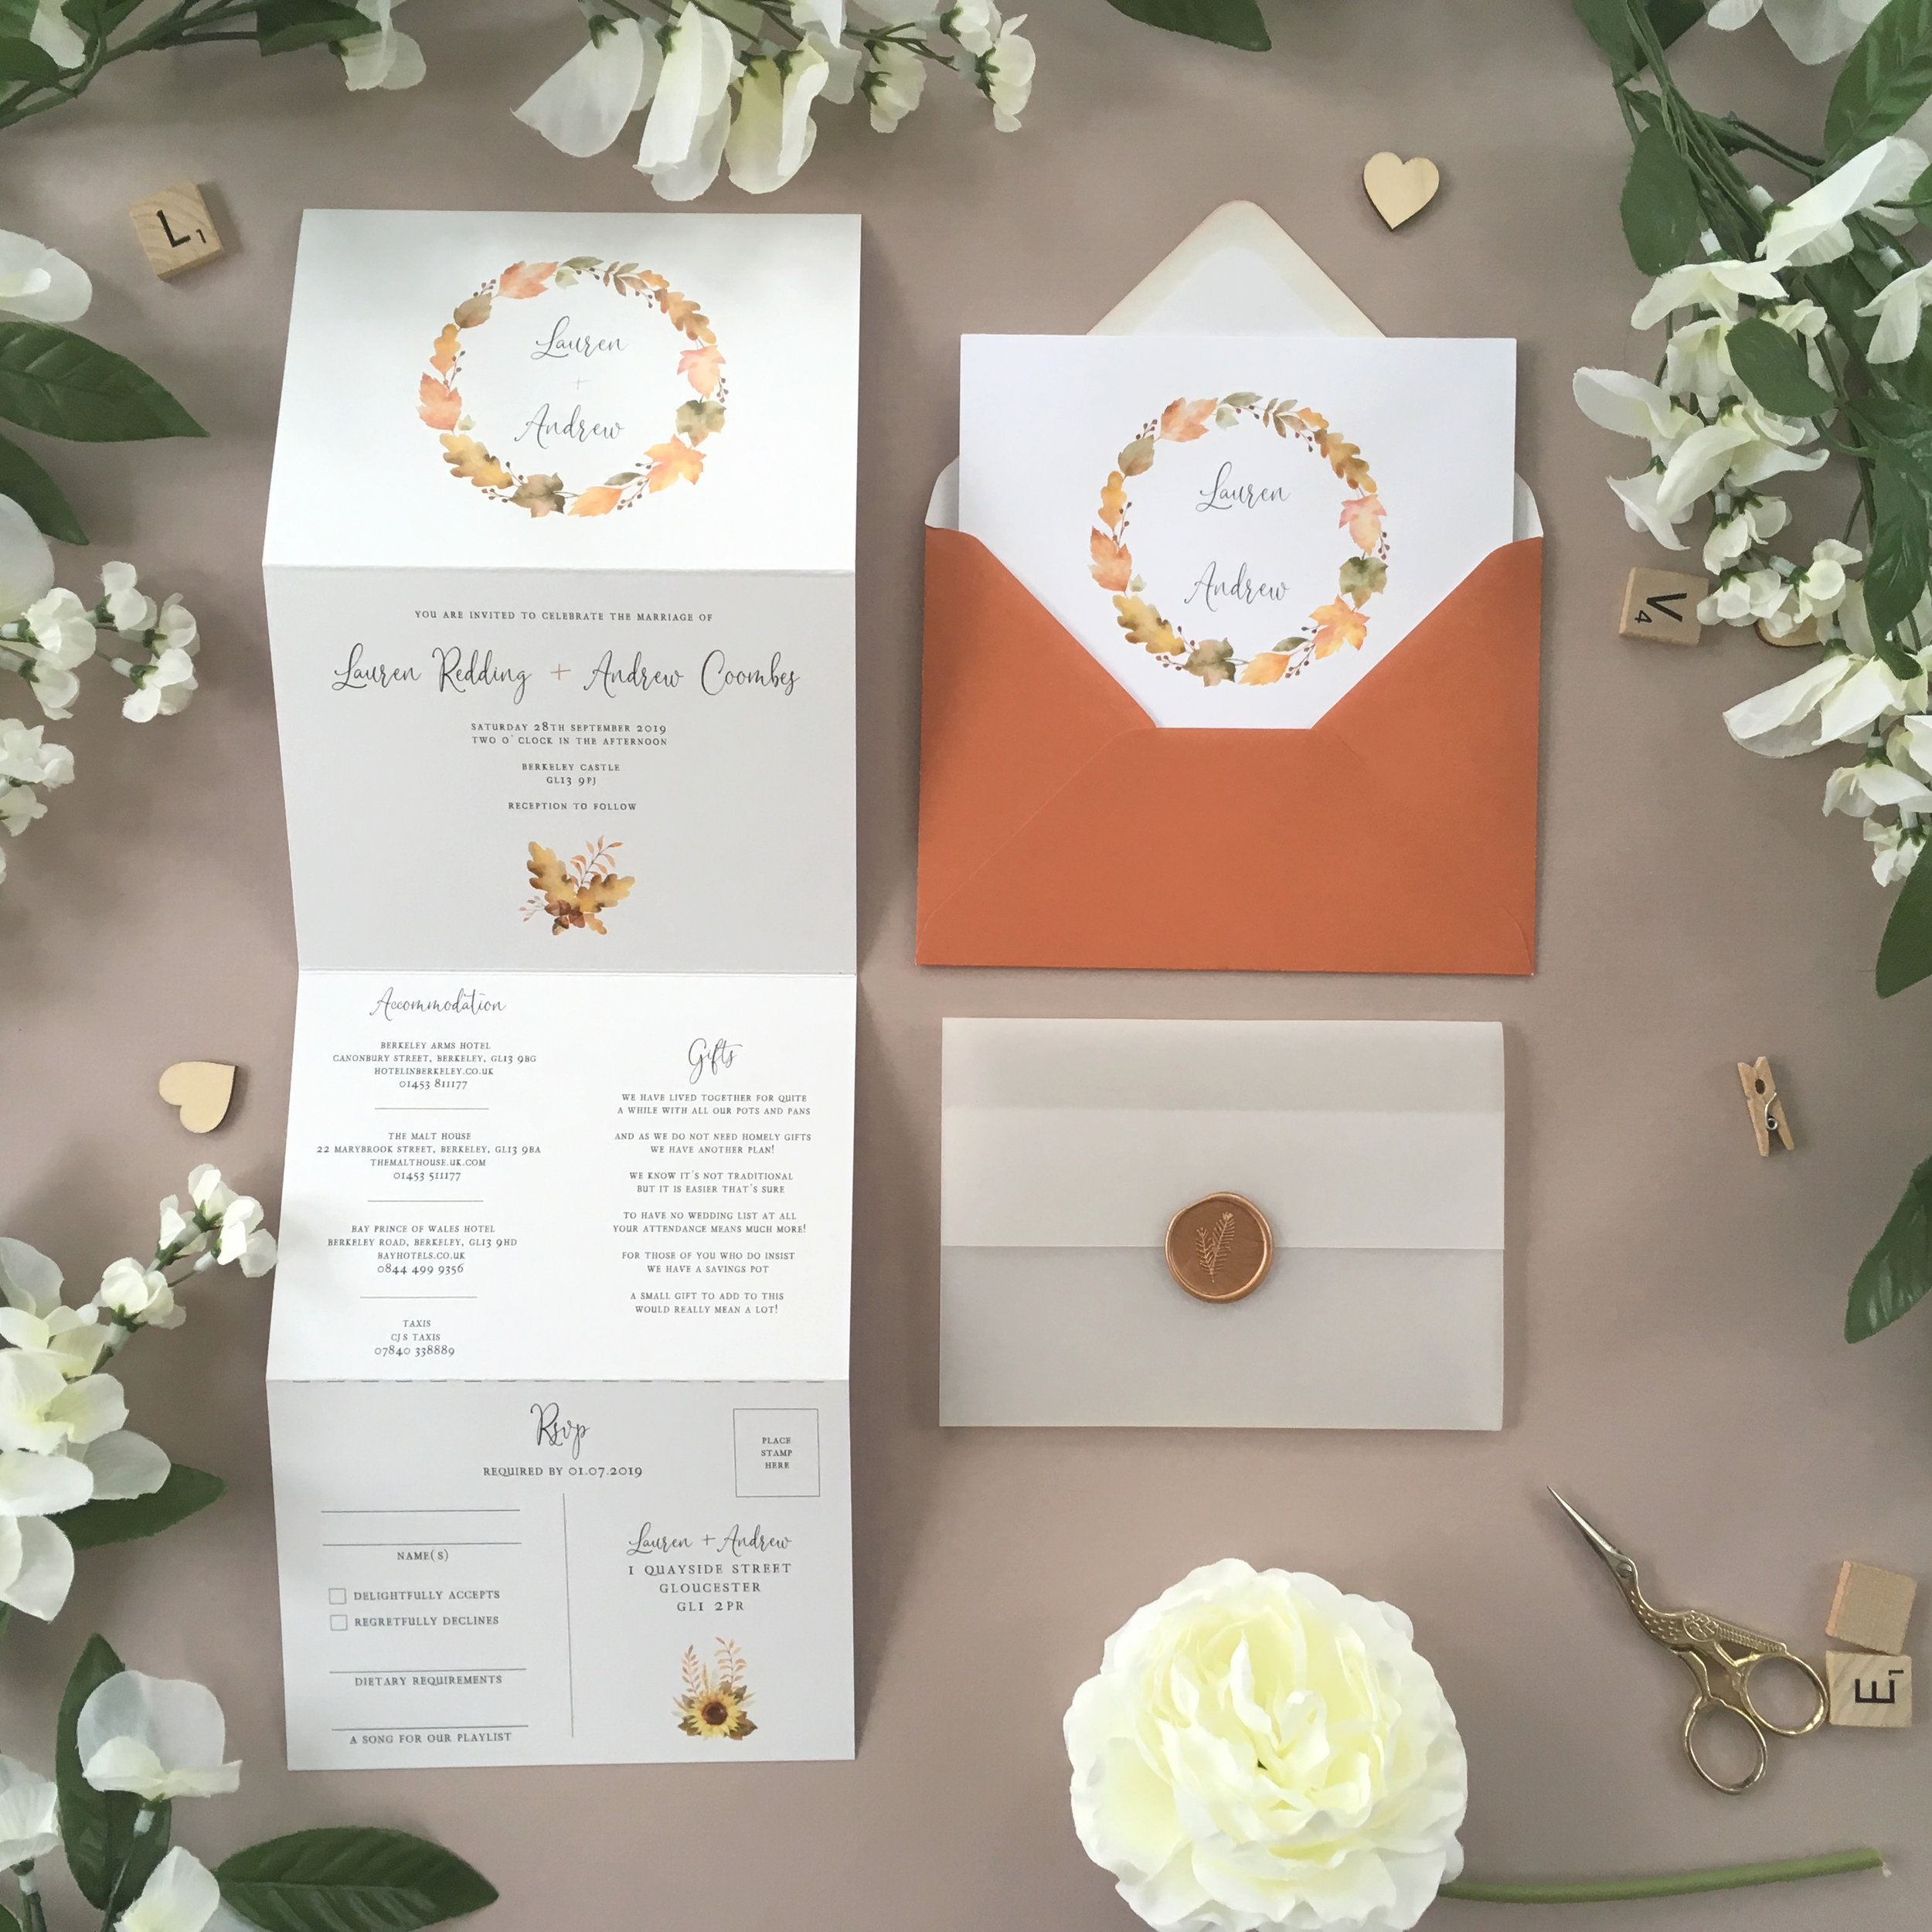 Richmond - Perfect for an autumn wedding day, our Richmond collection uses subtle oak leaves and autumnal artwork on this pretty concertina wedding invitation.Our concertina invitations are a great all-in-one solution, with a detachable RSVP at the bottom of the invitation - all guests need to do is fill in their details, put a stamp in the corner and post!Concertina invitations can be provided on an as-is basis, or can be provided bound with a vellum jacket and timeless wax seal, or tied with ribbon or twine for a lovely hand-finished approach.- Concertina Invitation - from £1.95- Ribbon or Twine - £0.40- Vellum Jacket - £0.40- Wax Seal - £0.85 (Custom engraving also available)White envelope provided as standard with coloured upgrade available.